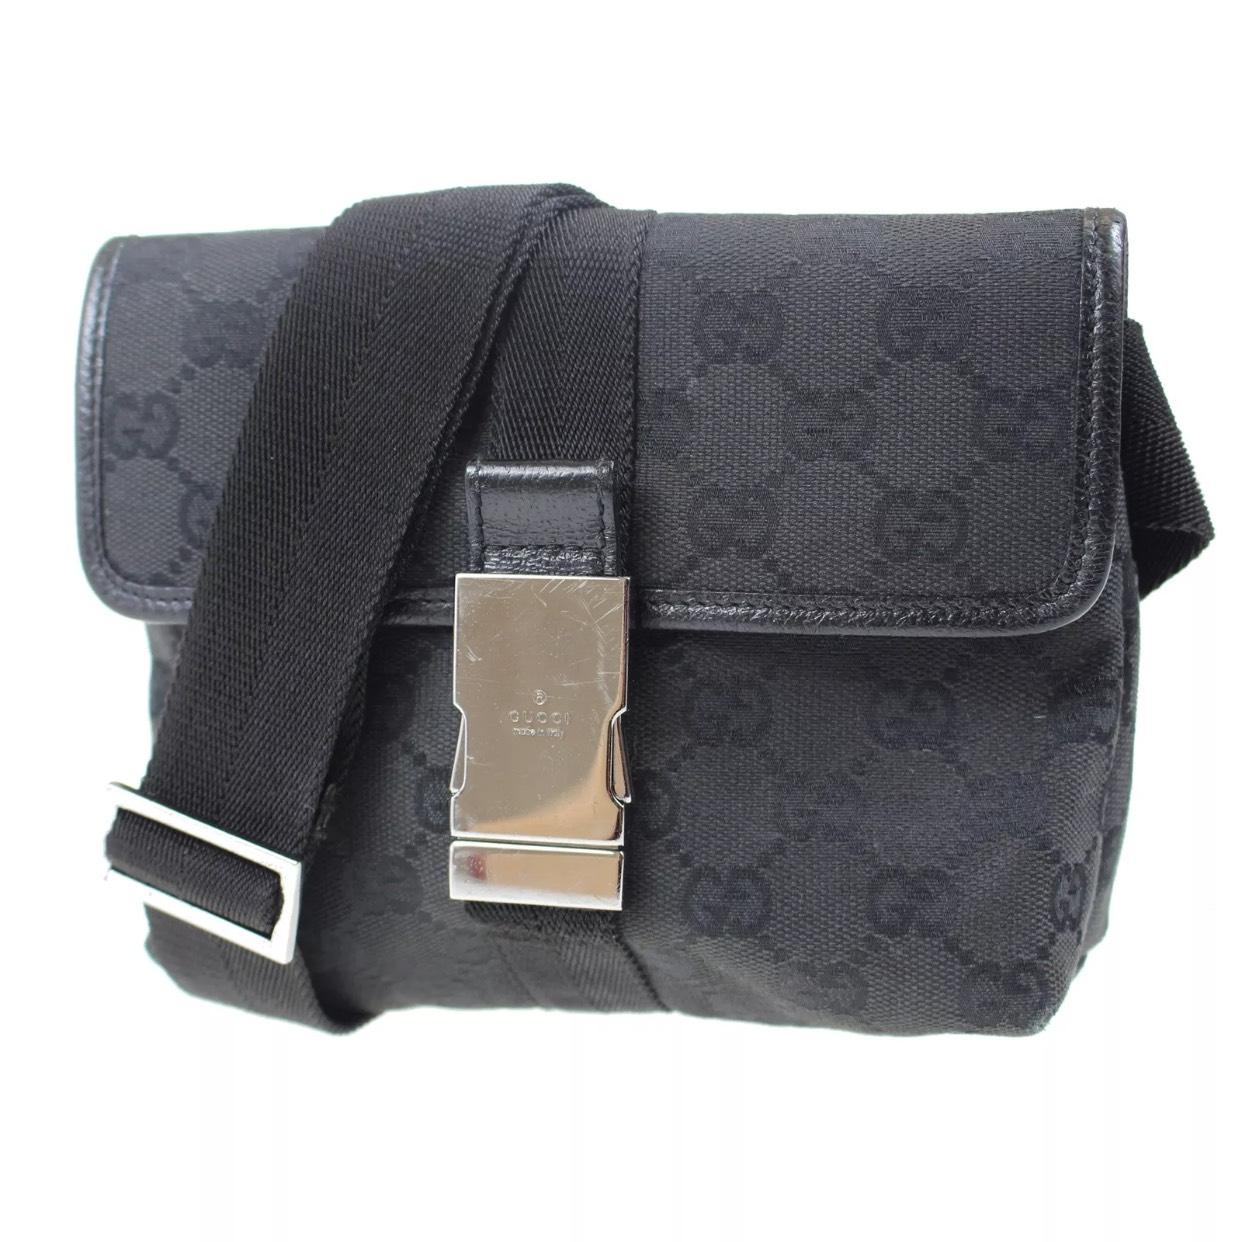 gucci on sale. gucci on sale